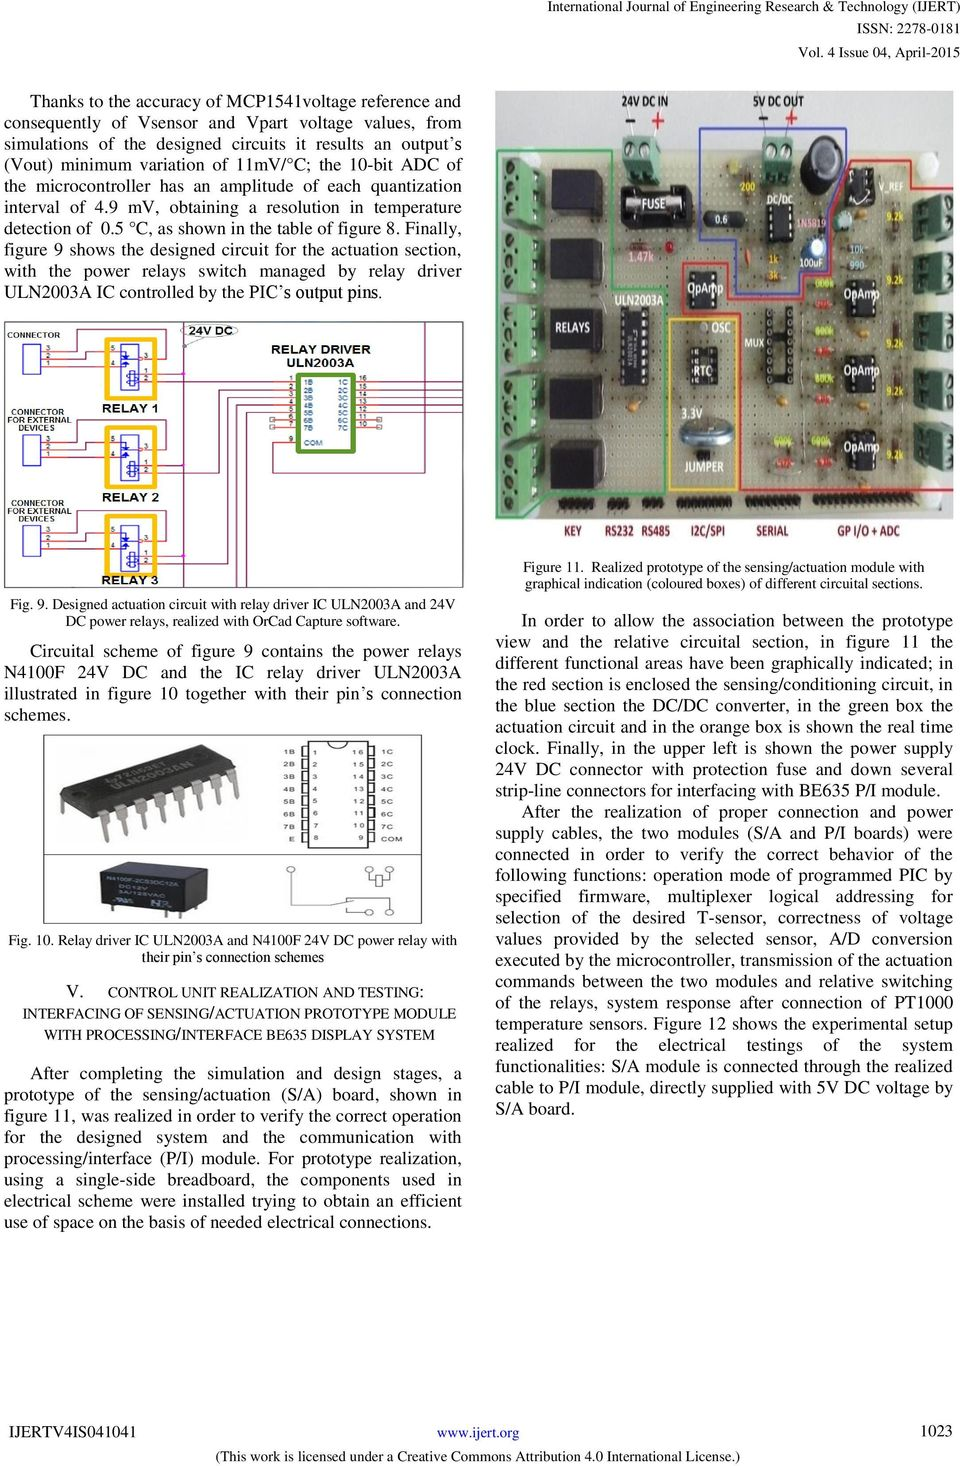 Dc Relay Driver Circuit Ic Uln2003 Thermo Solar Plant Managing And Monitoring By Electronic Finally Figure 9 Shows The Designed For Actuation Section With Power